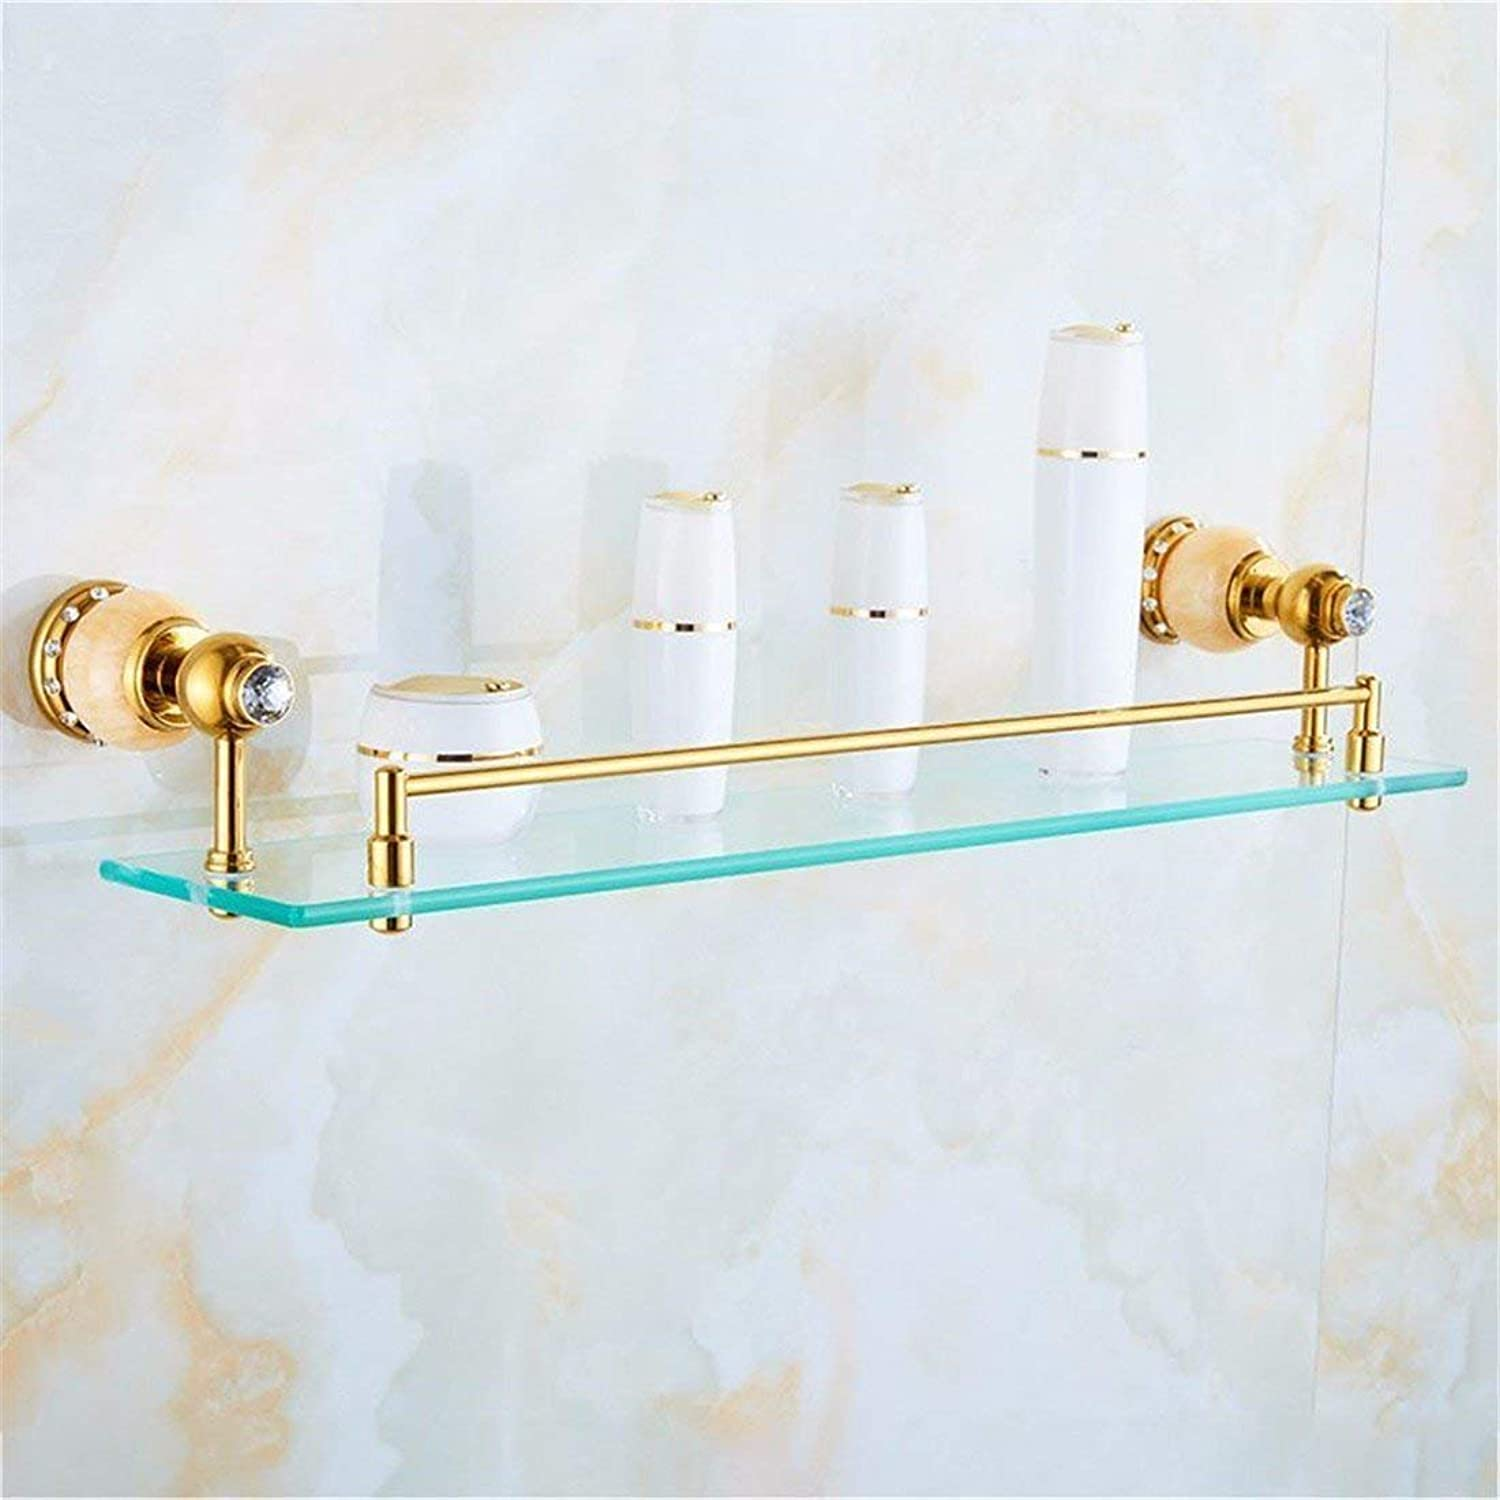 European Type in Full Copper The Belt of Jade Drill with Hair-Bath, of The gold,1 Batteries